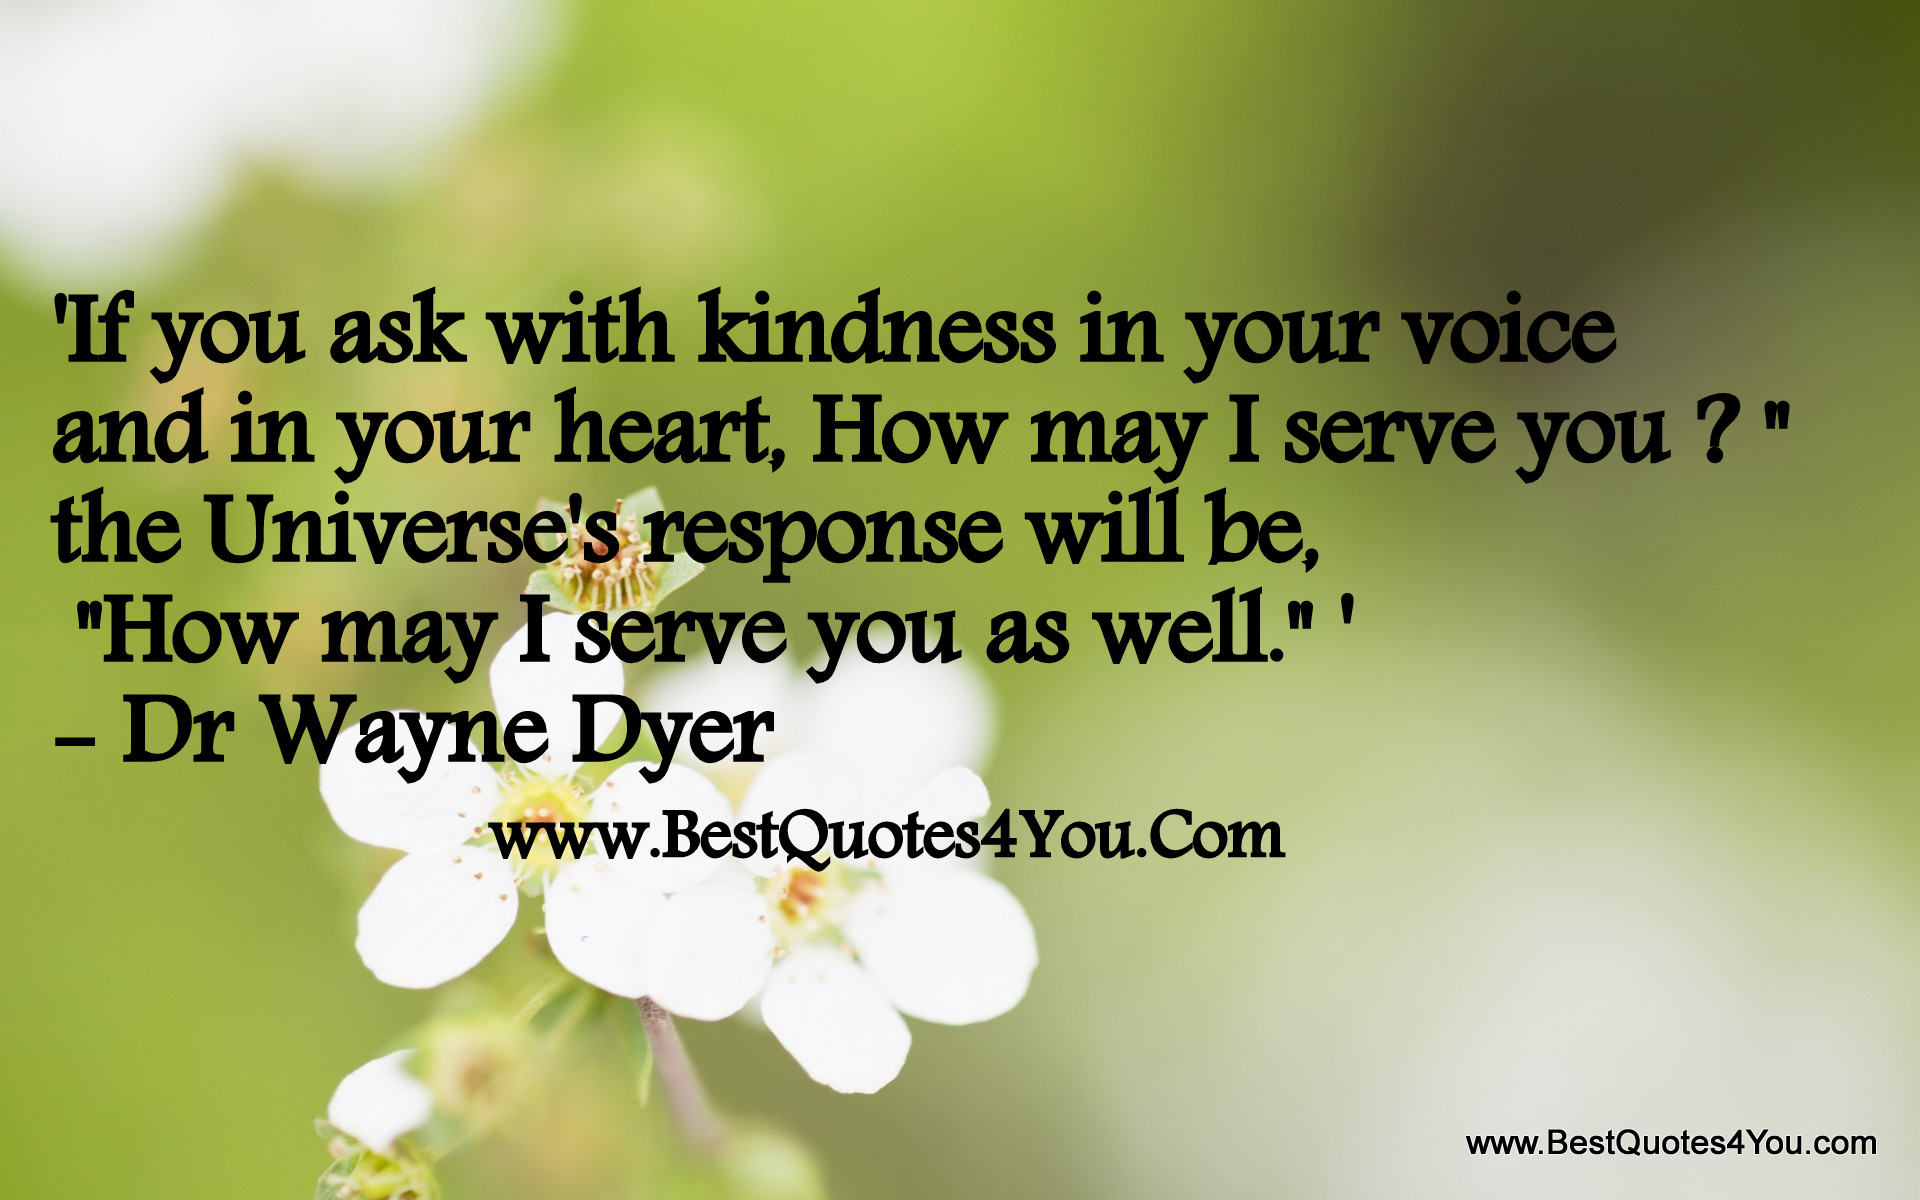 If You Ask With Kindess In Your Voice And In Your Heart, How ...